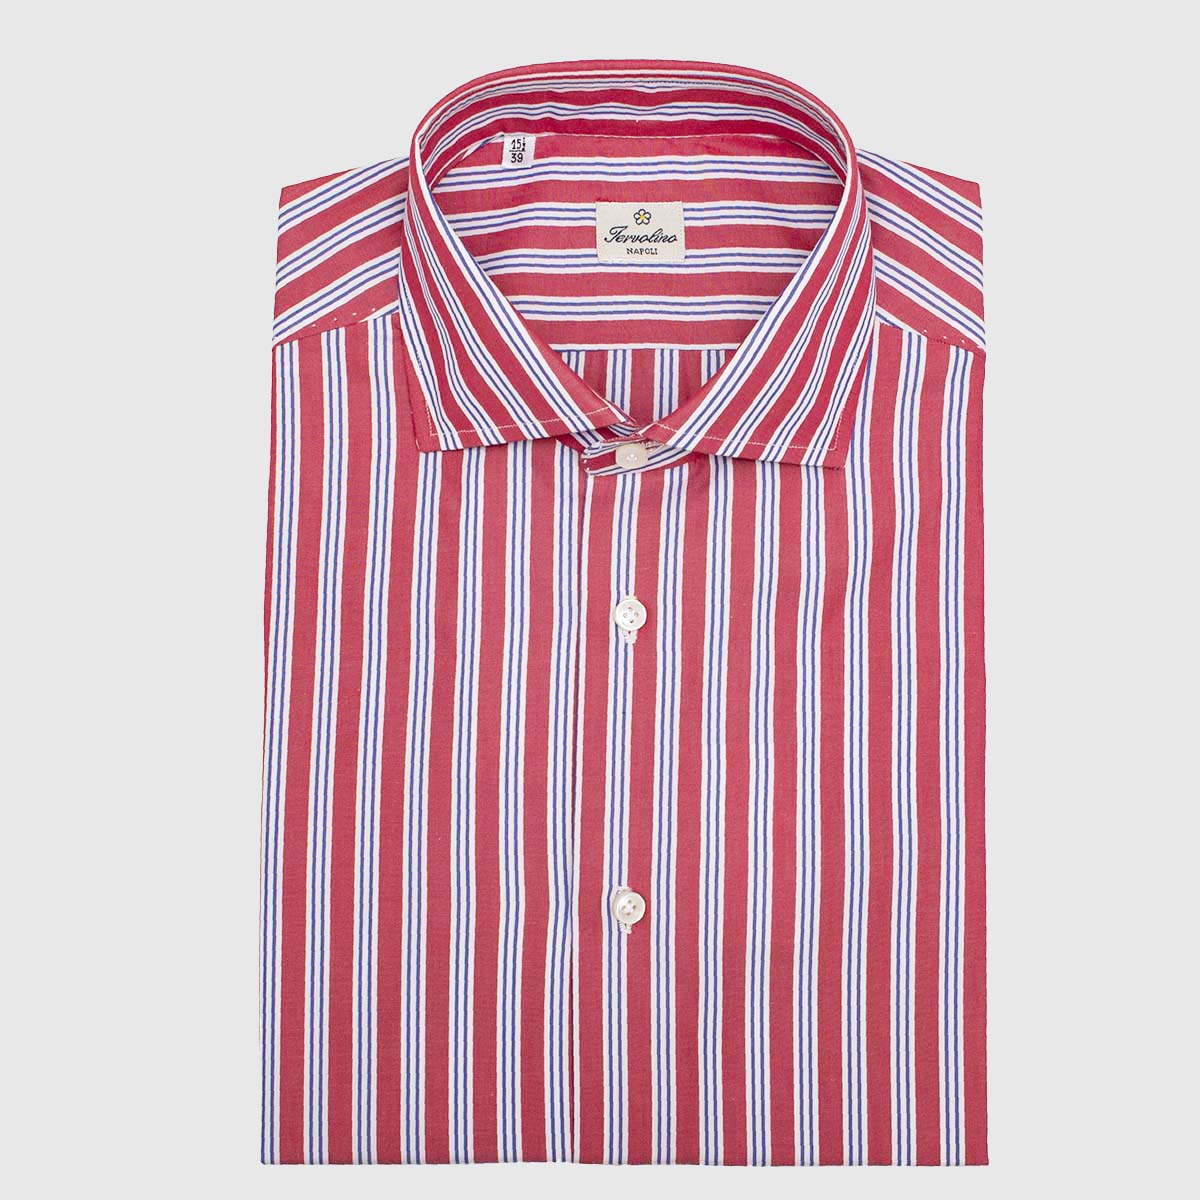 100% red and white striped Cotton shirt made in 12 hand-made steps